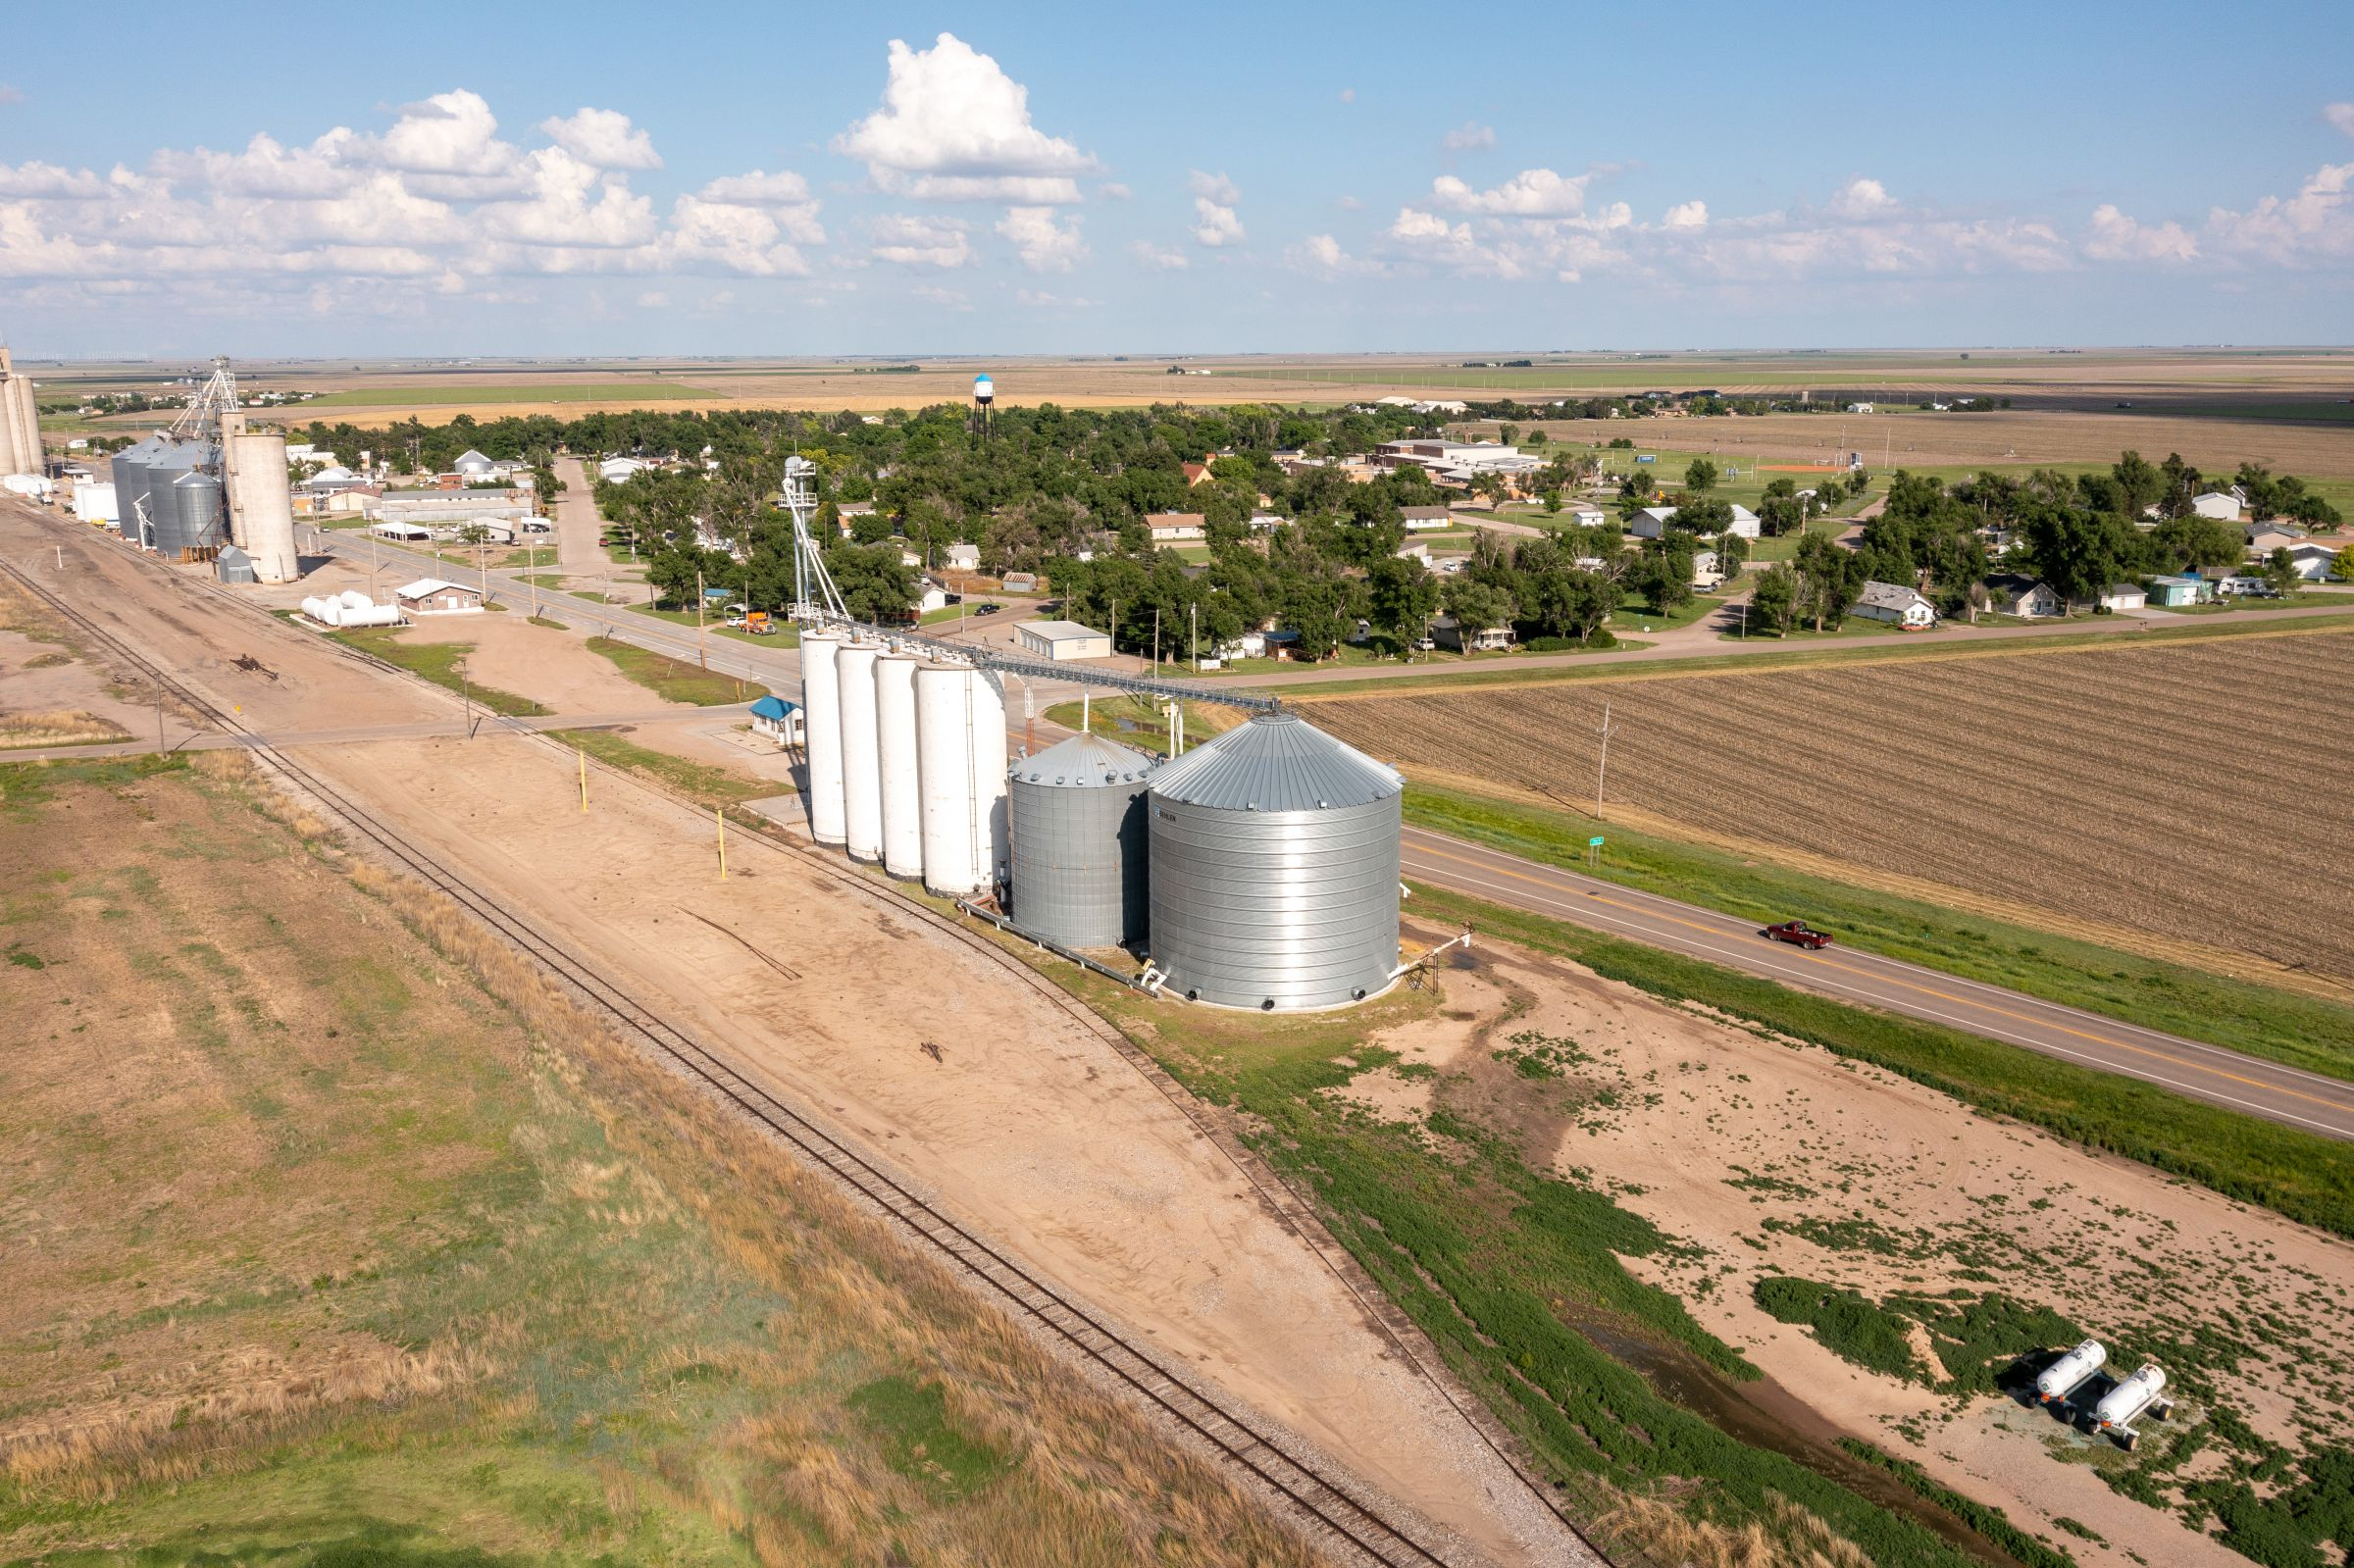 auctions-gray-haskell-county-kansas-2990-acres-listing-number-15570-2-2021-06-11-184115.jpeg